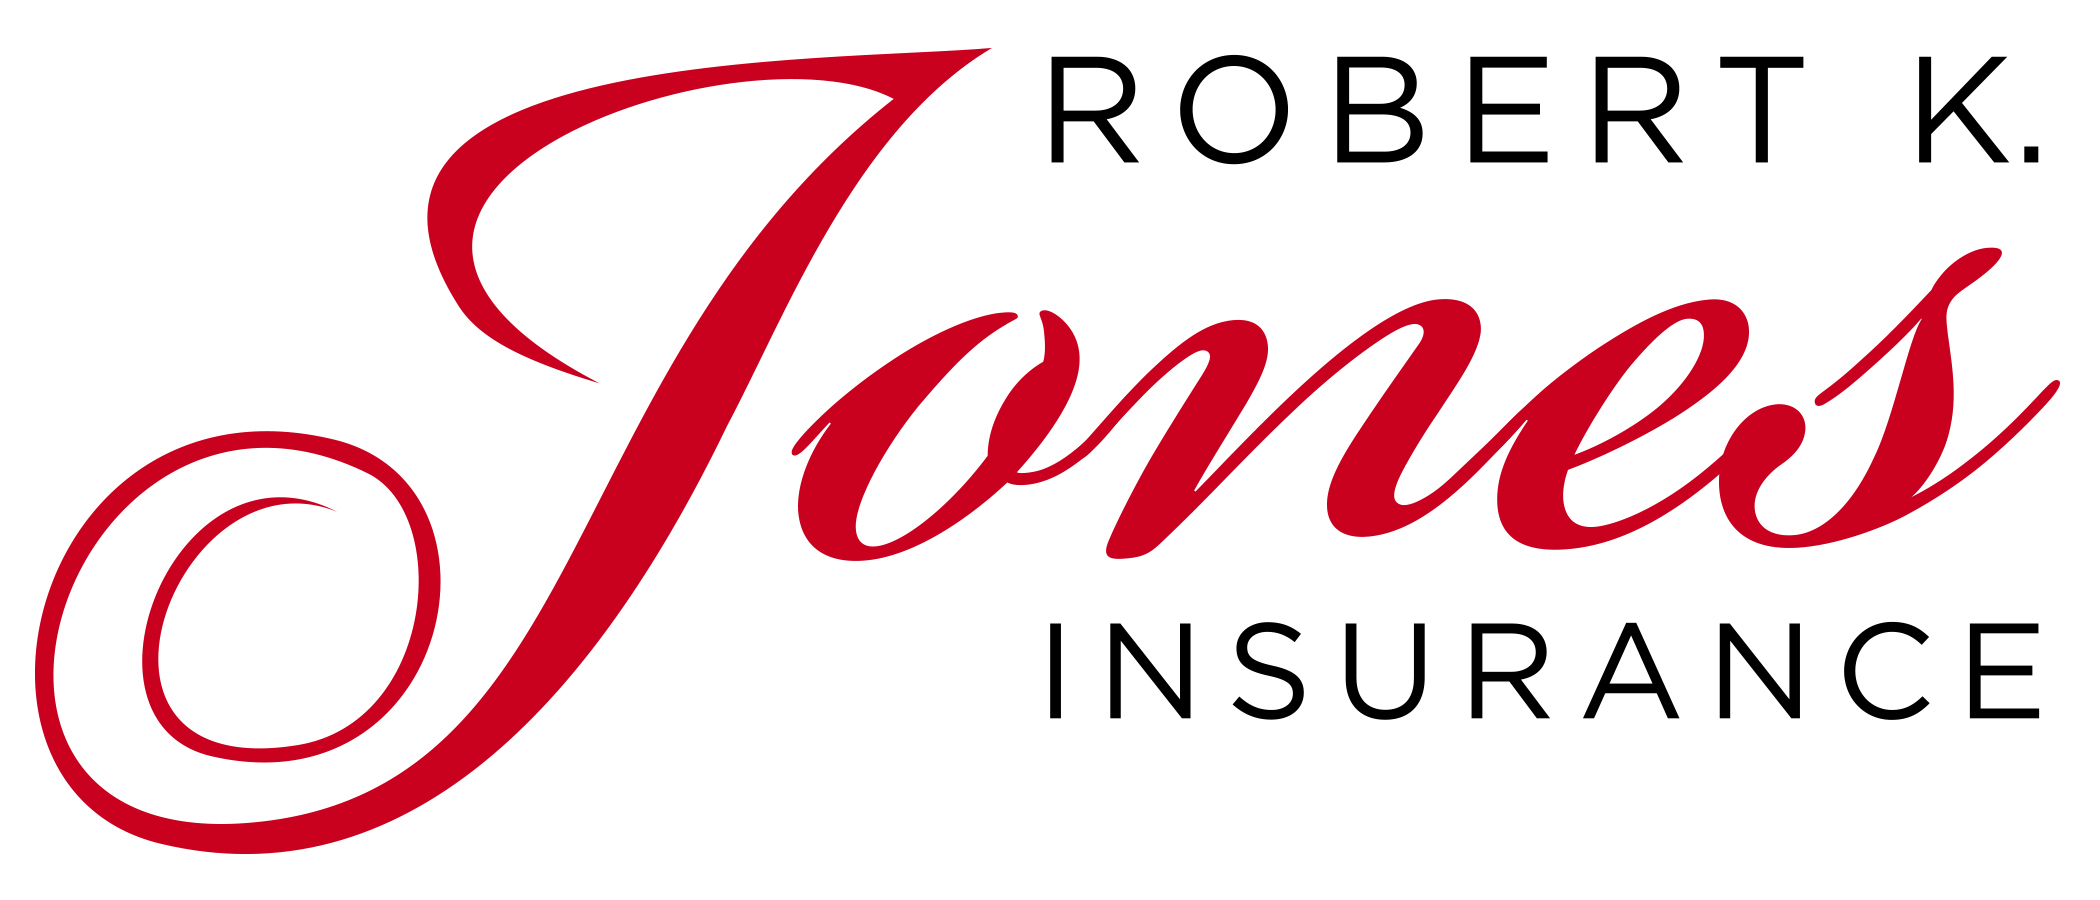 robert jones insurance logo